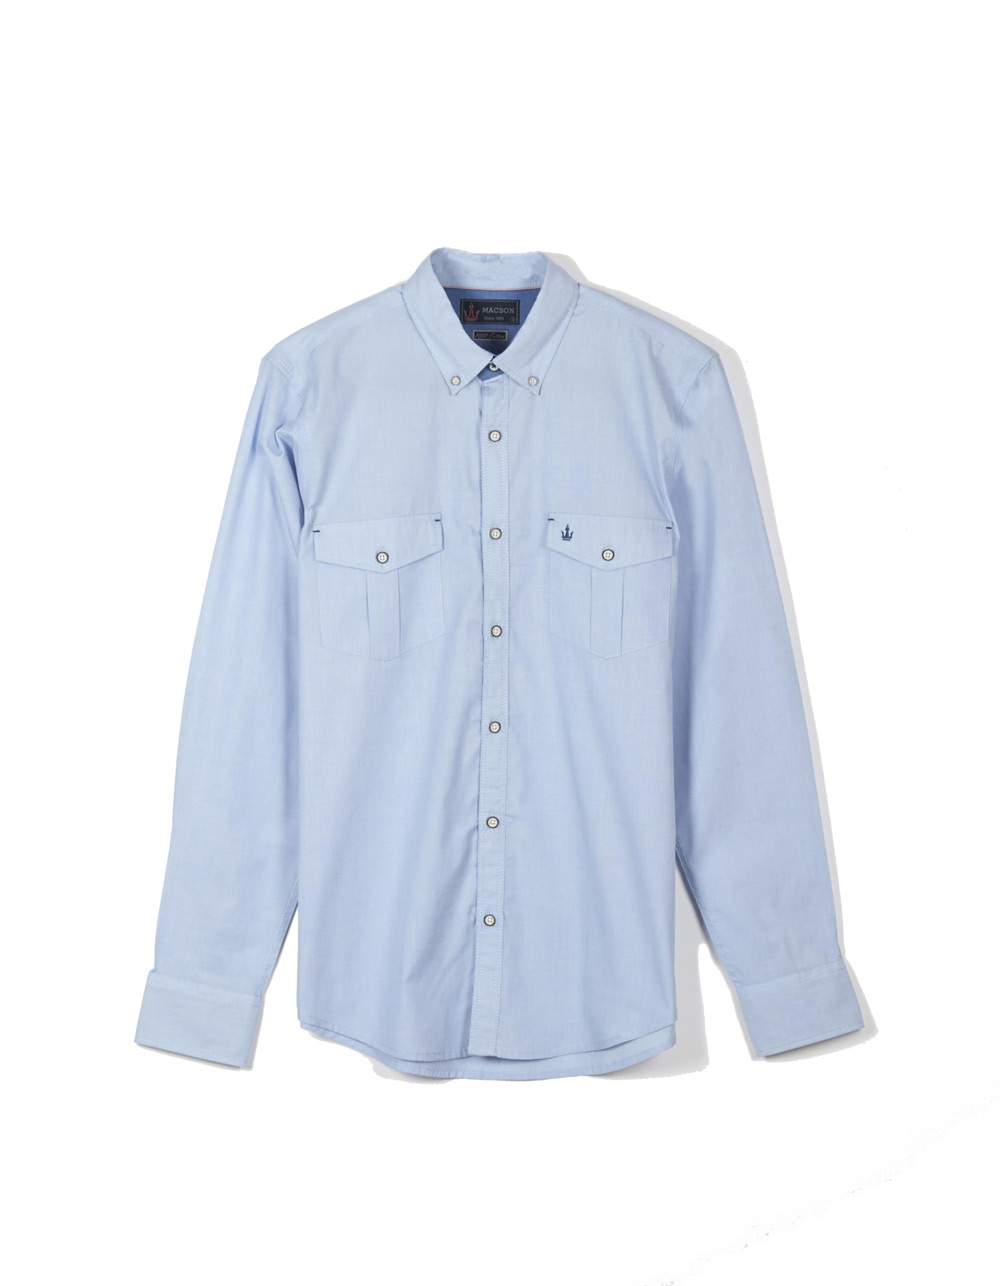 Light blue fil à fil shirt